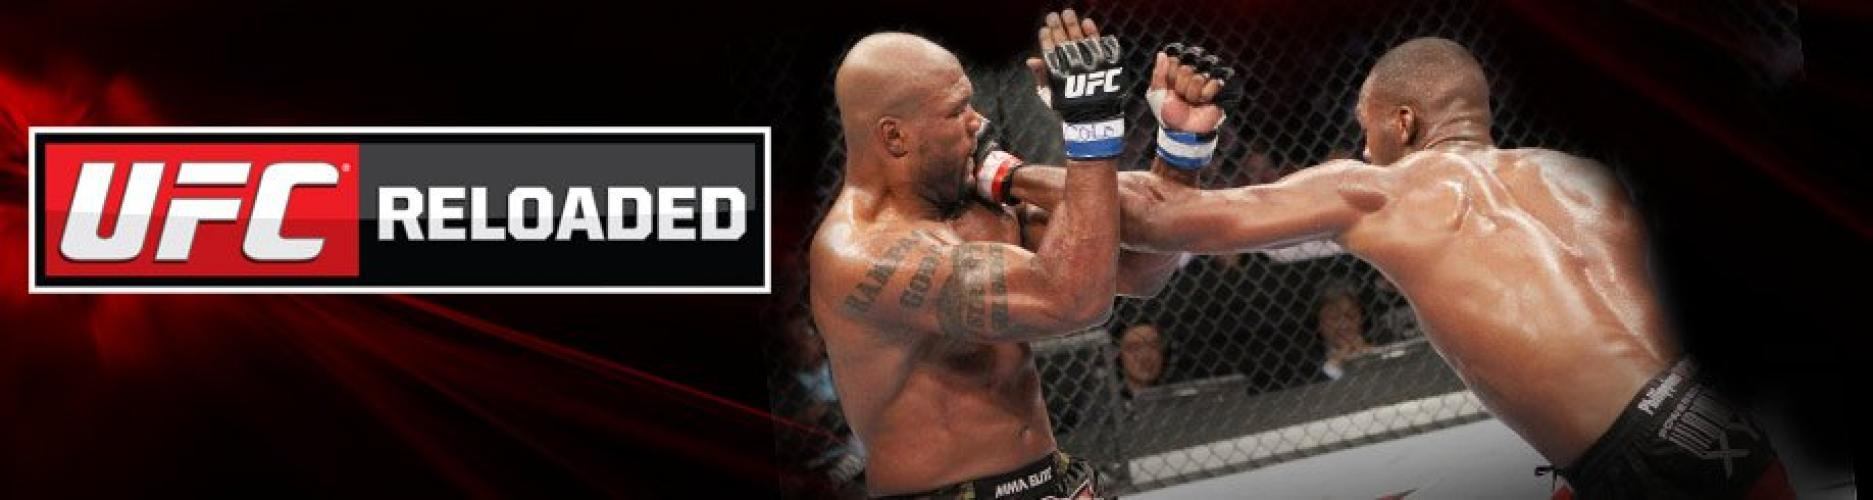 UFC Reloaded next episode air date poster